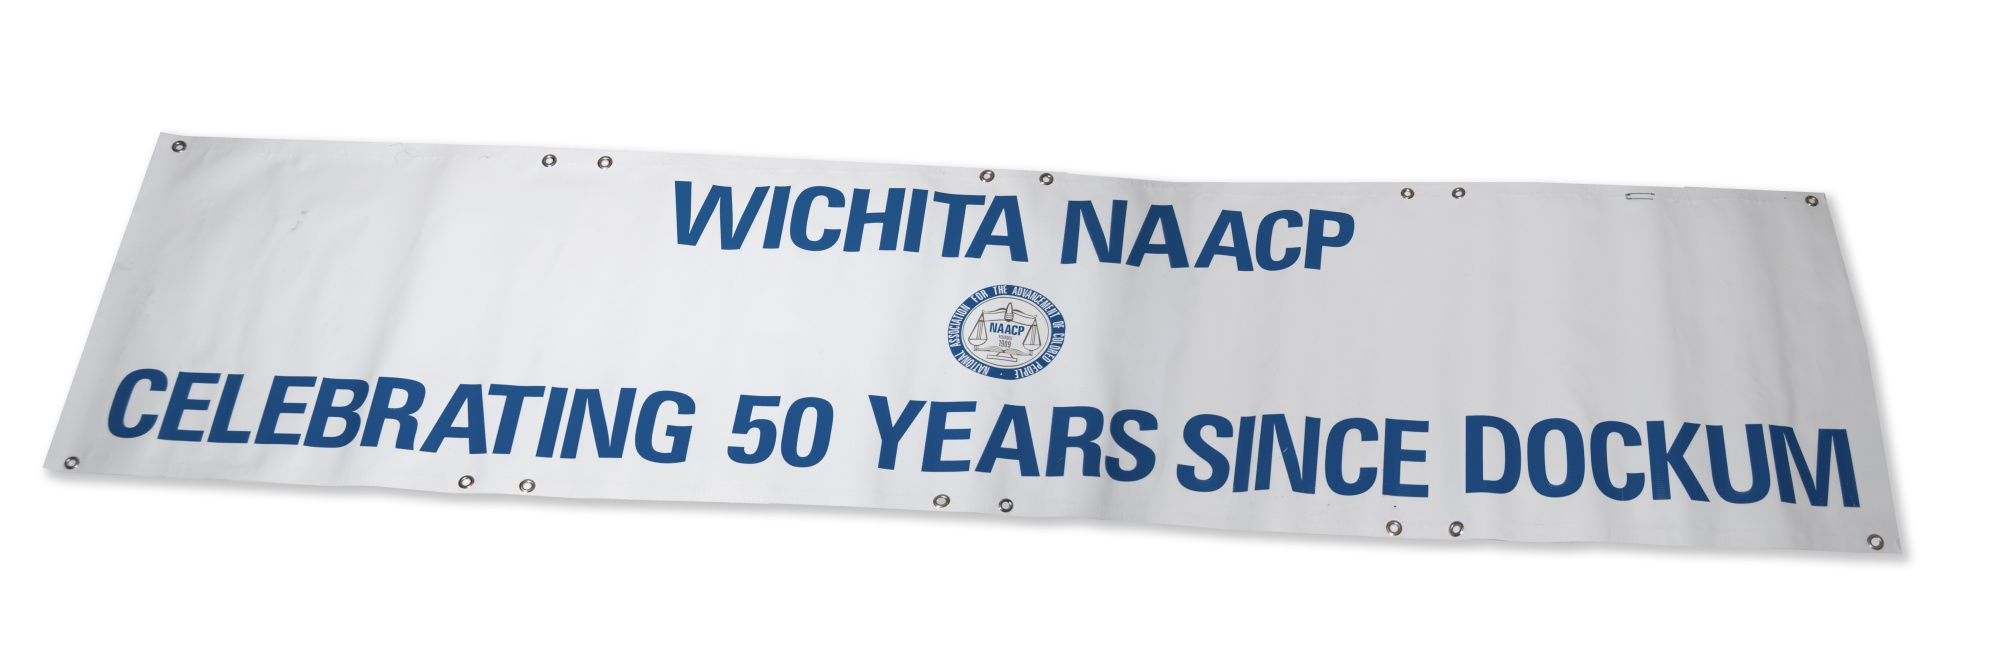 Banner from march commemorating a sit-in at the Dockum Drug Store in Wichita